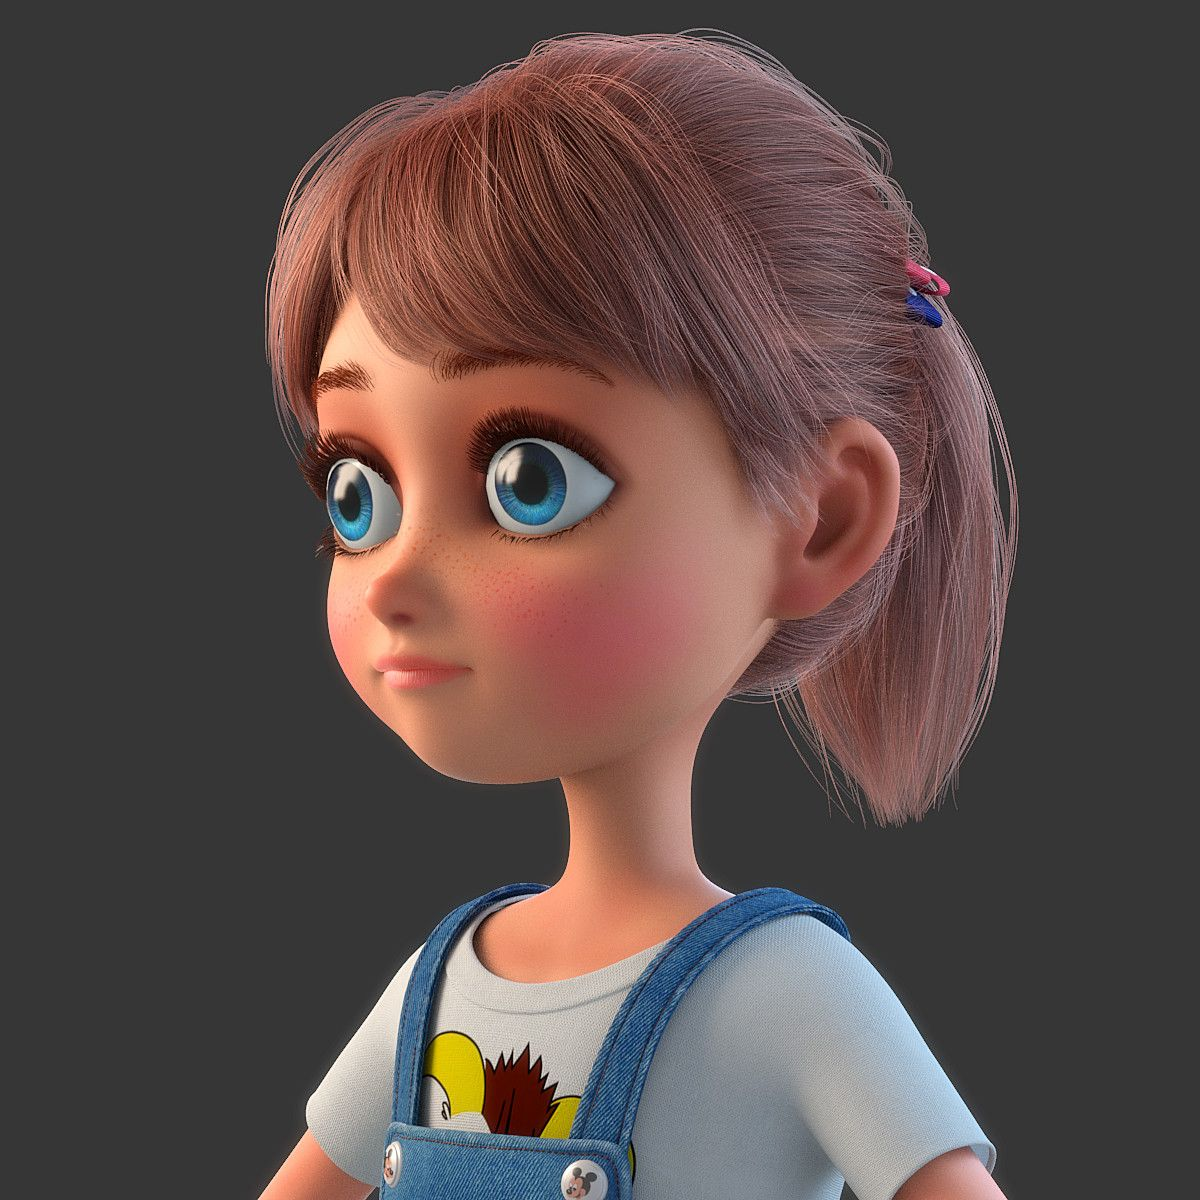 3d Model Of Cartoon Girl Rigged Girl Cartoon Cartoon 3d Model